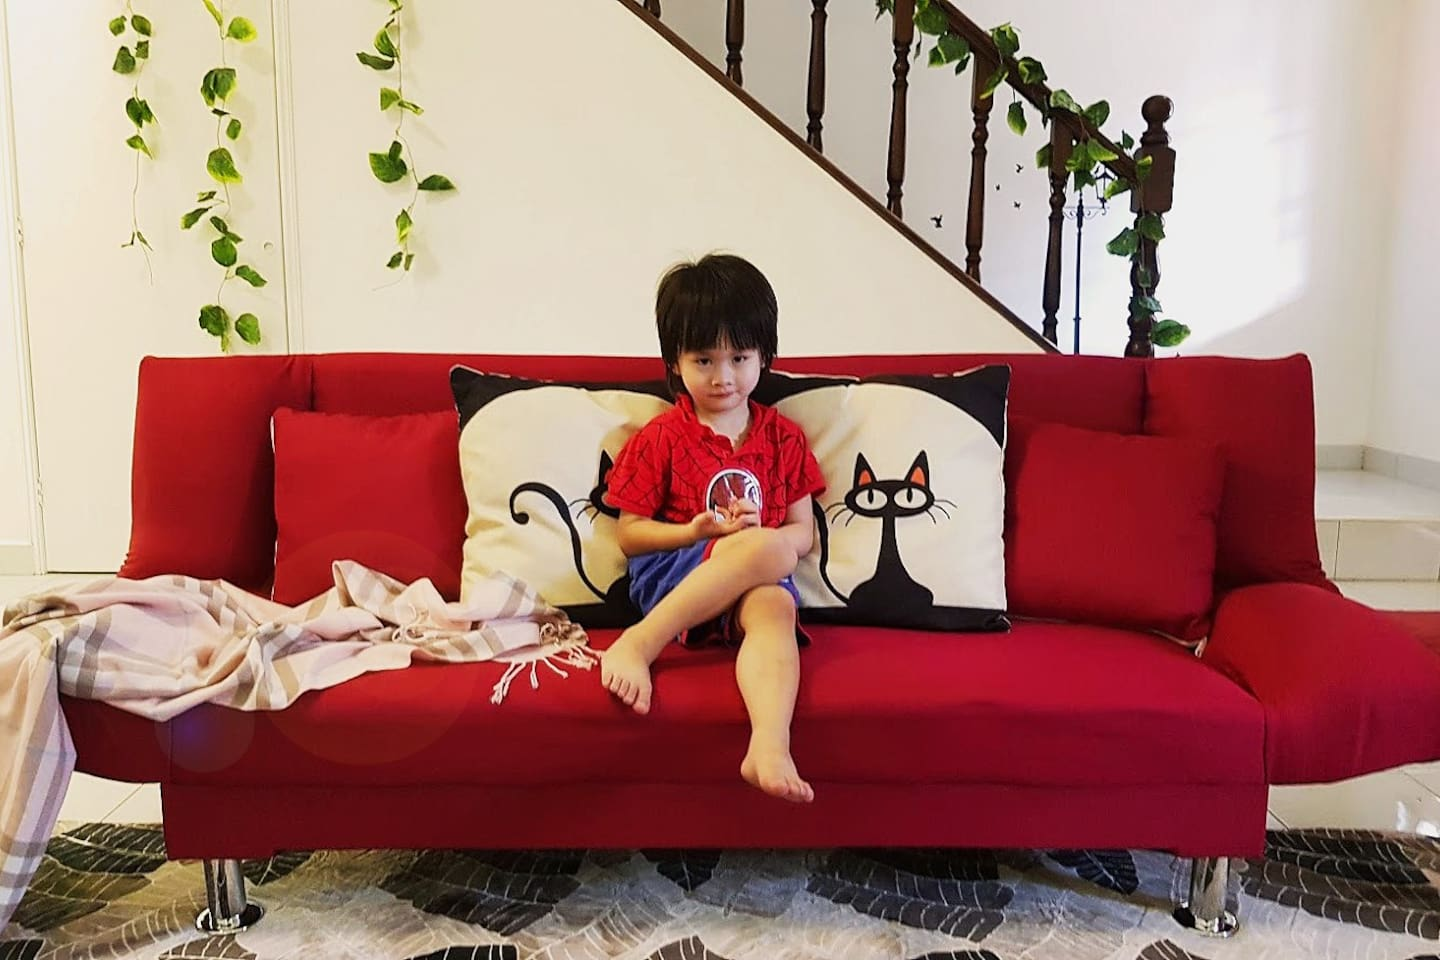 1- Cover Photo. Lucas on the red couch